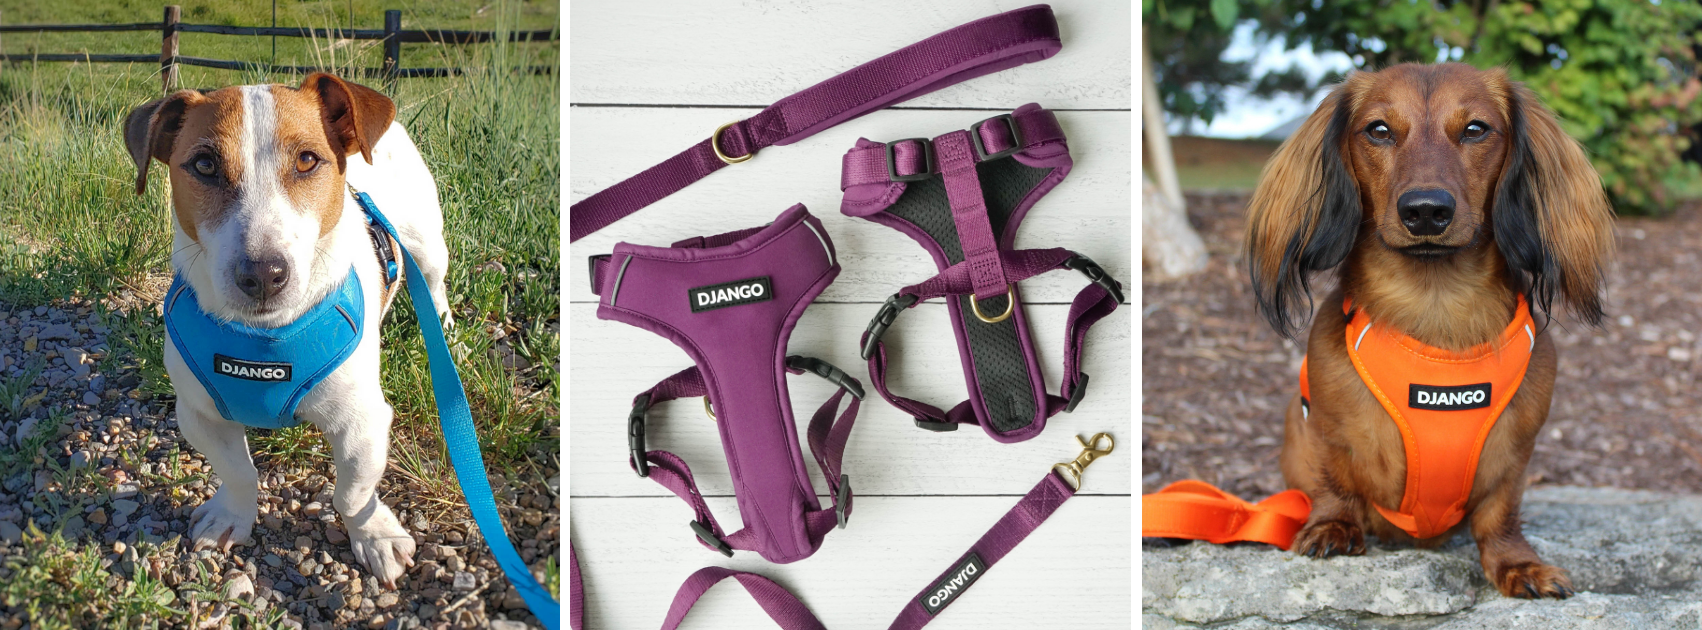 Shop DJANGO's best selling and 5 star rated Adventure Dog Harness, Collar, and Leash Collection on djangobrand.comcollection